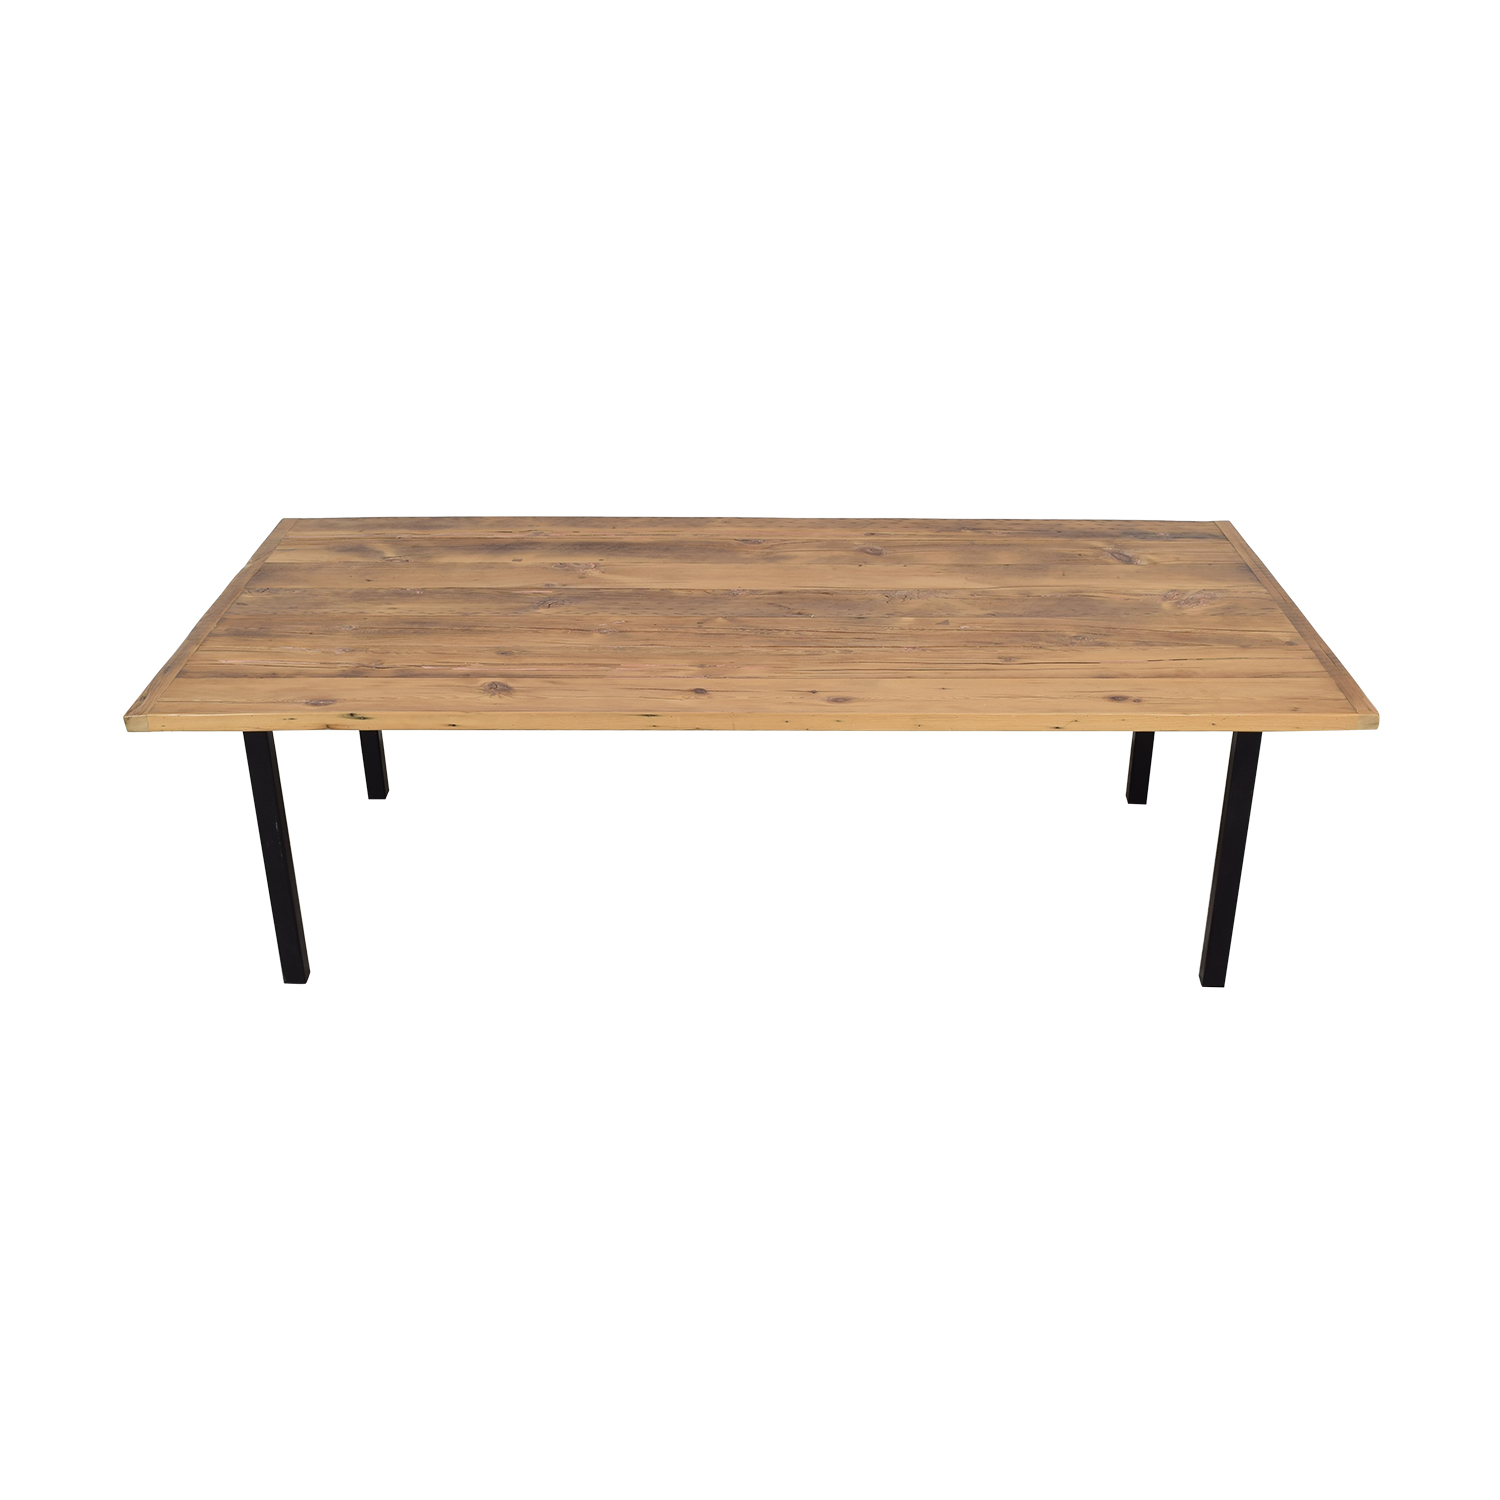 buy  Reclaimed Wood Table online